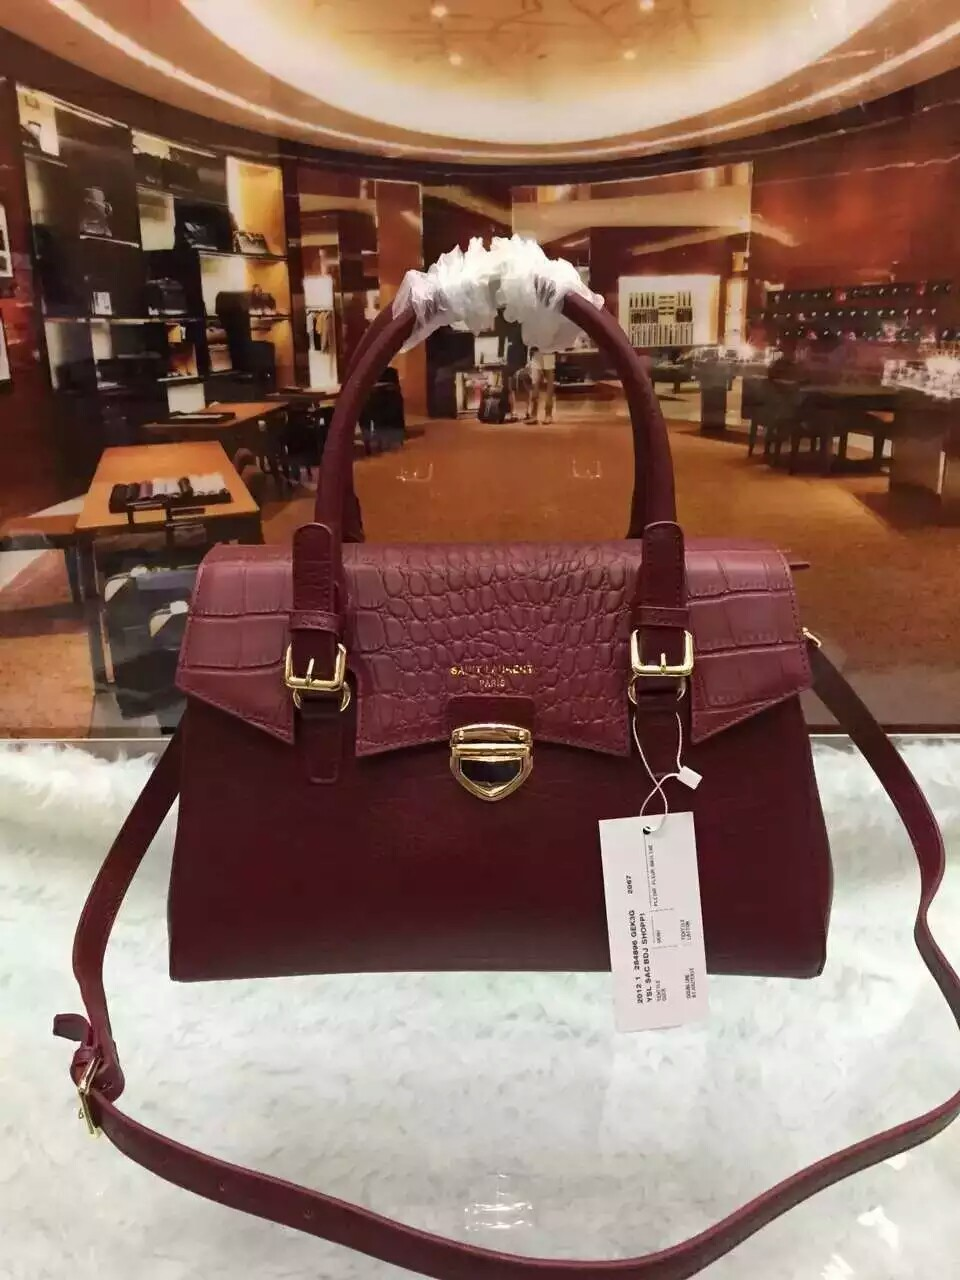 2016 Saint Laurent Bags Cheap Sale-Saint Laurent Shoulder Bag in Burgundy Crocodile Embossed Calfskin Leather